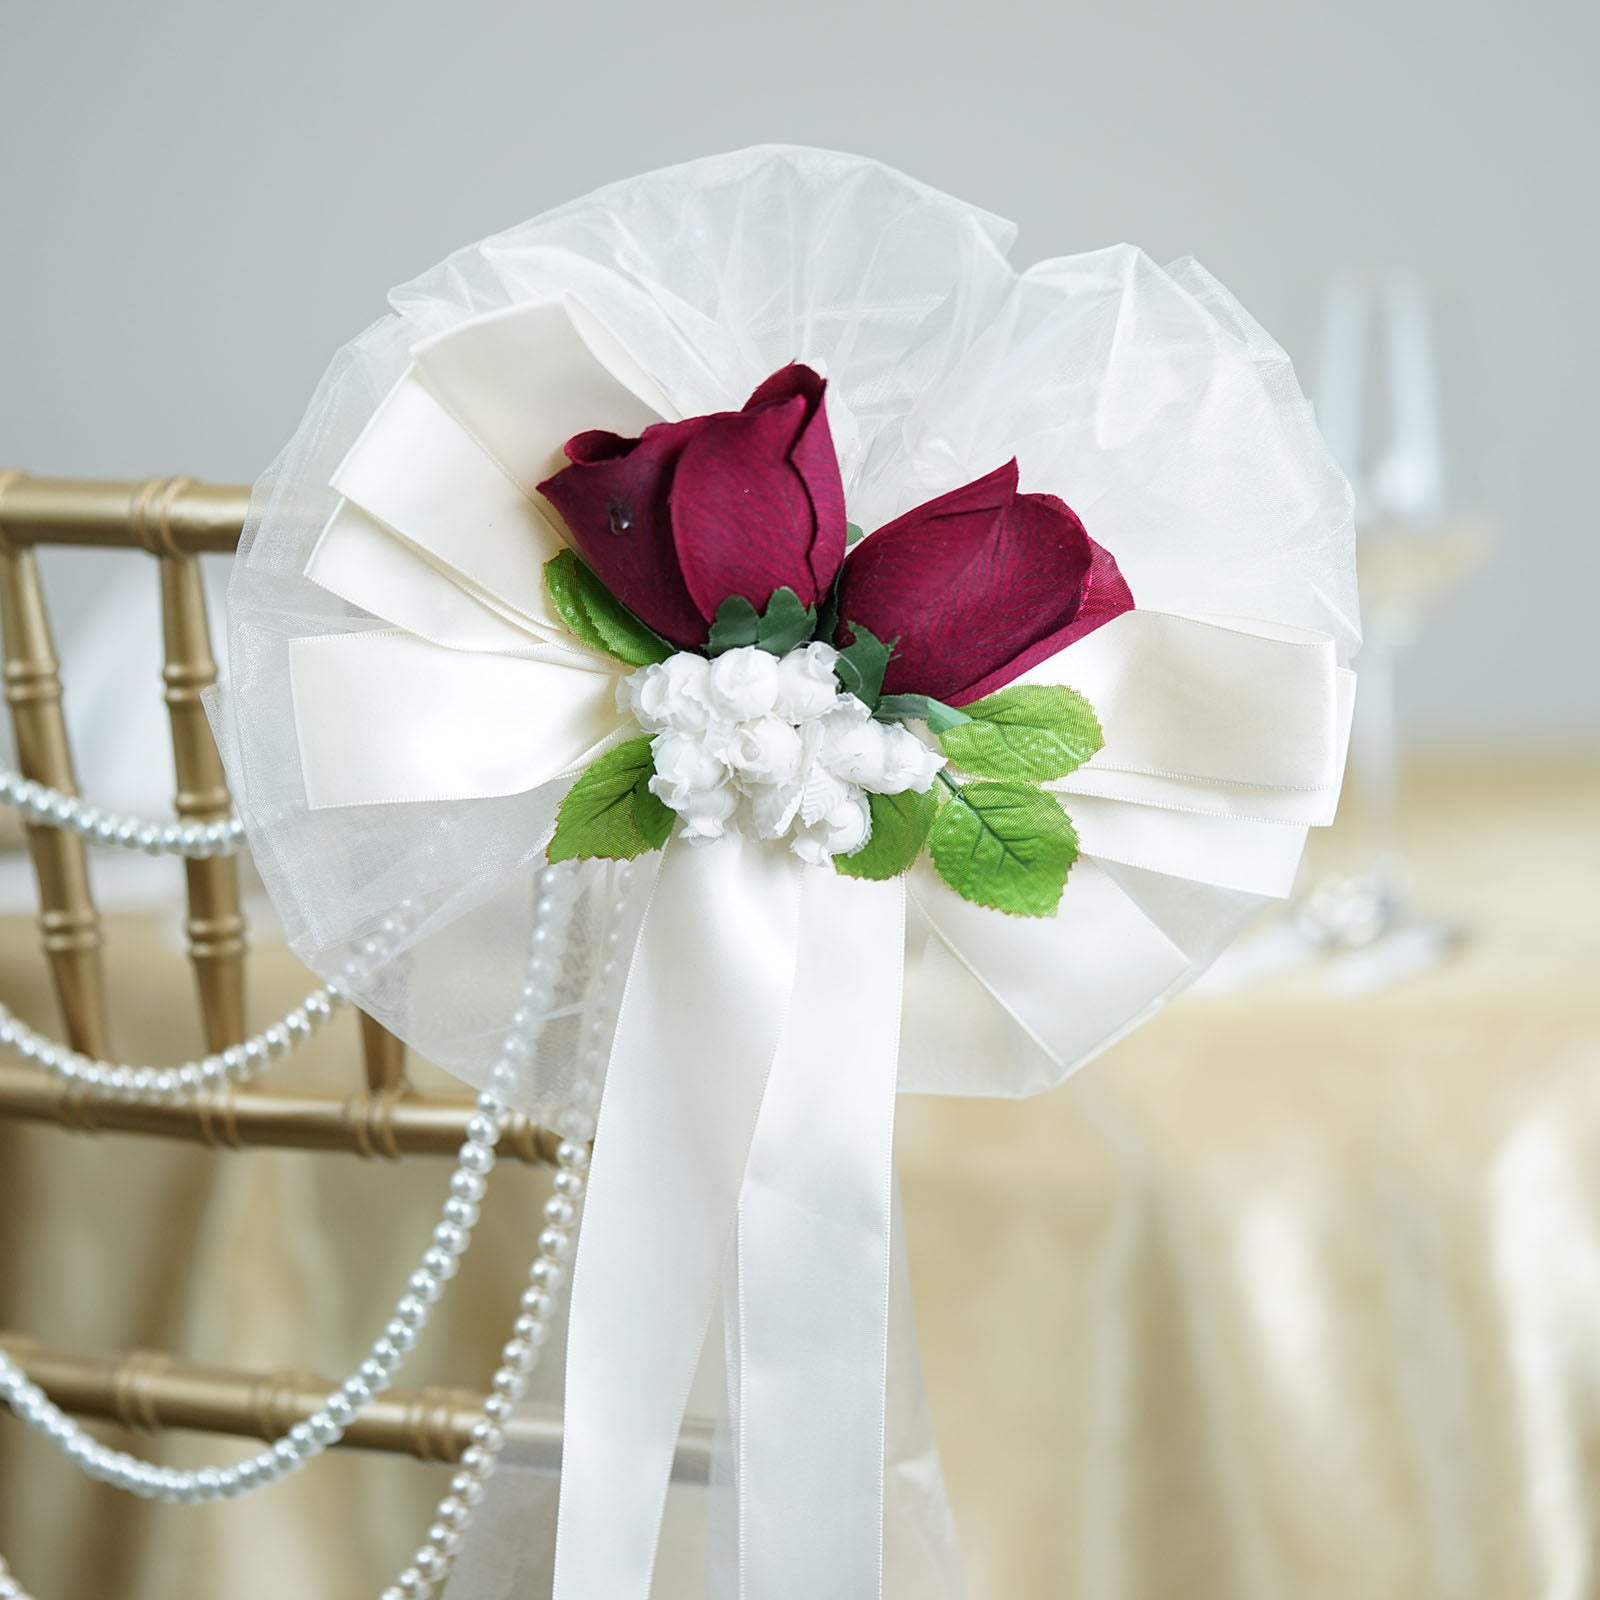 24 Quot Satin Ribbon With Dark Red Burgundy Velvet Roses On